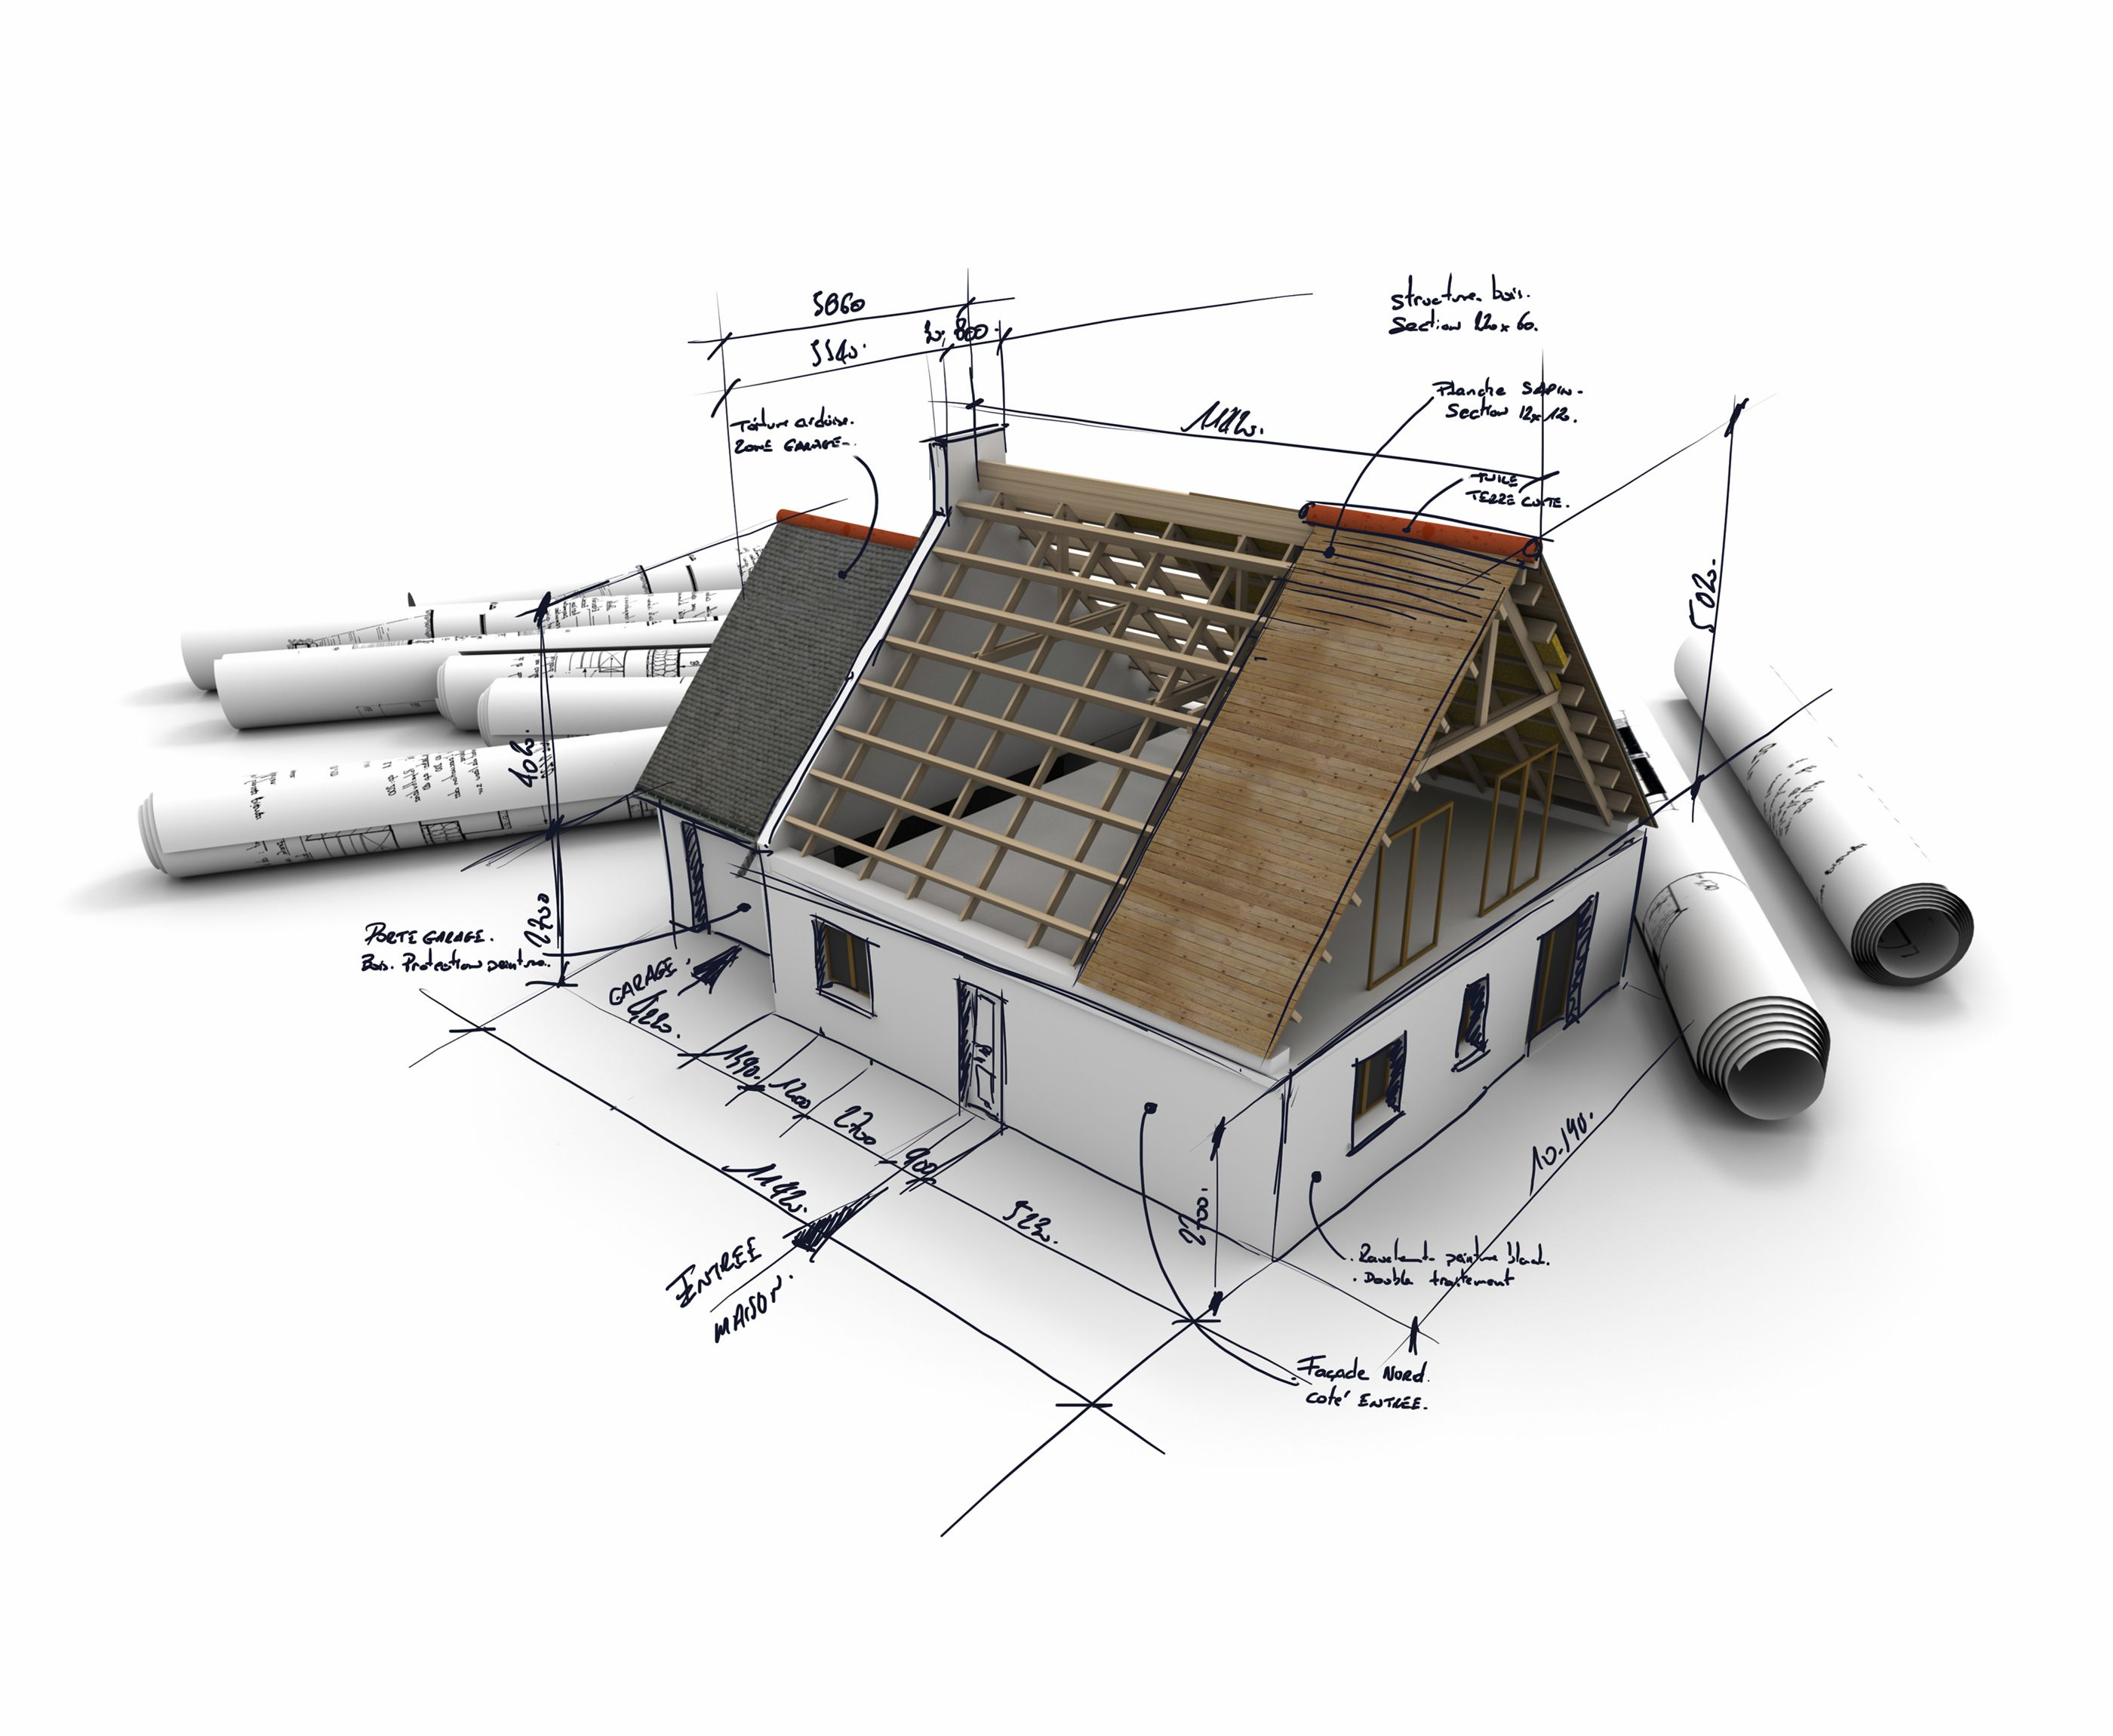 Building A House project of building a house | house plans and ideas | pinterest